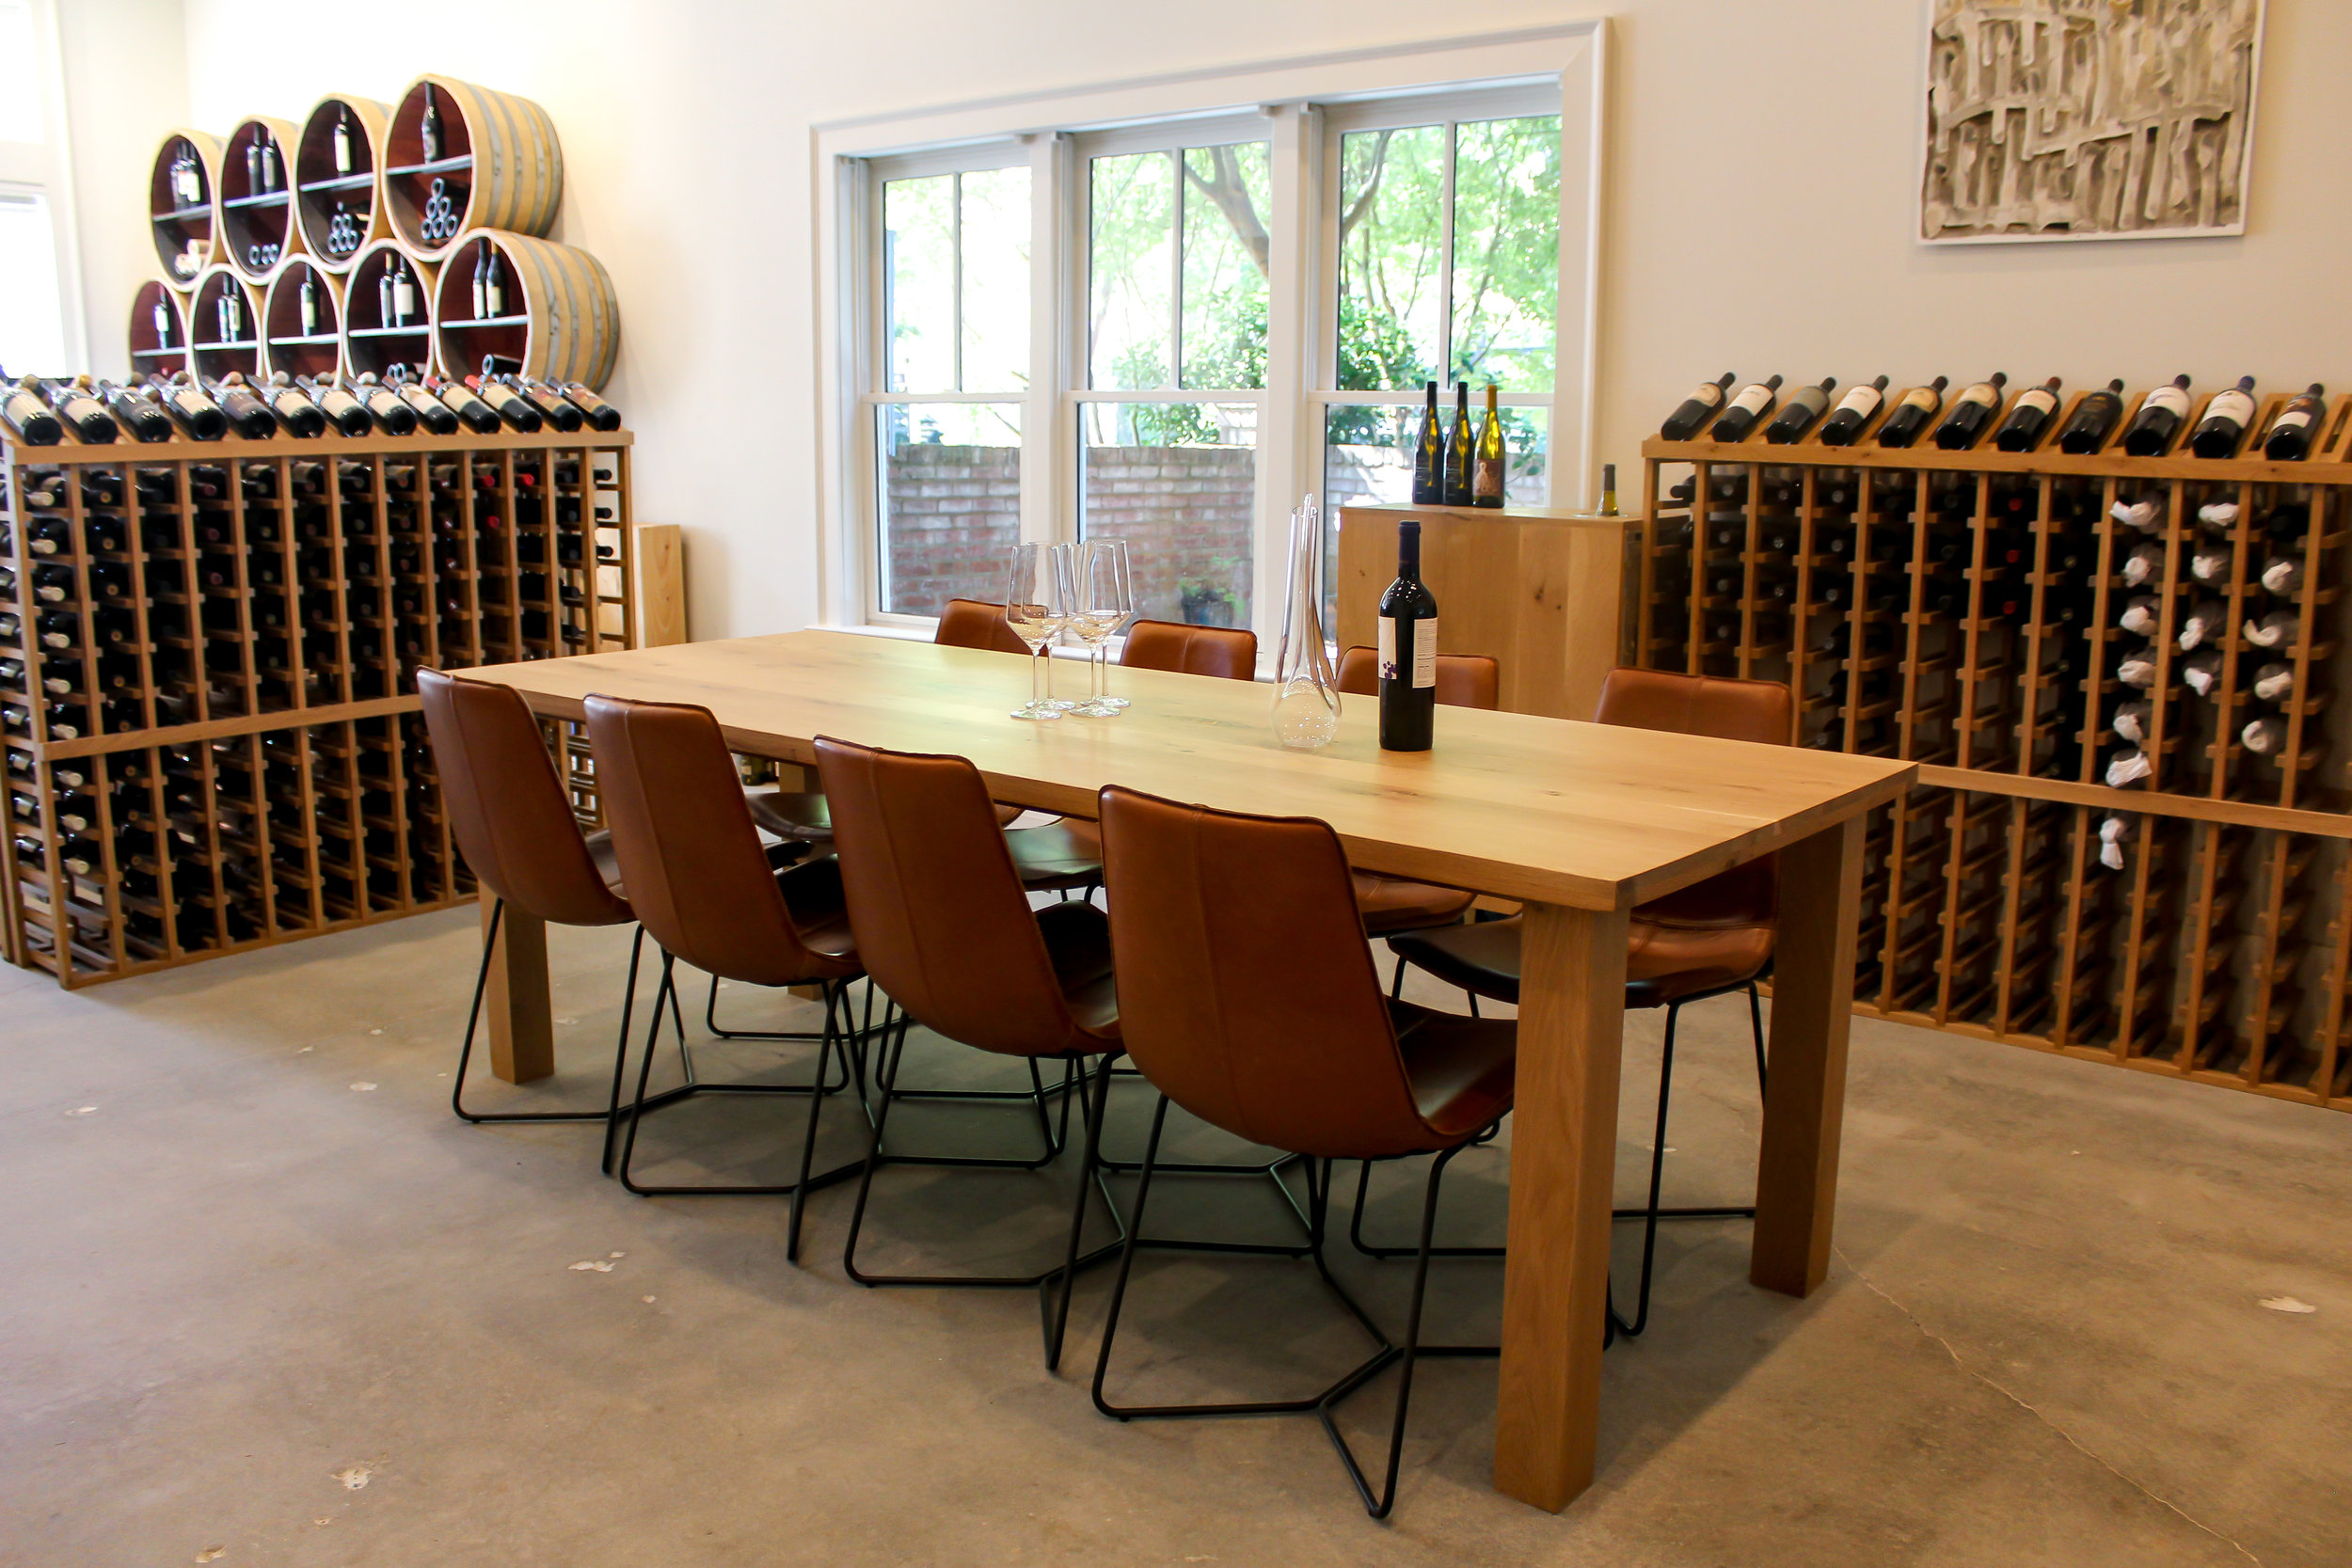 Private Wine Tastings - Enjoy a customized wine tasting for your group at The Wine Shop or in your home. Choose from reds, whites, sparkling or a combination. Snacks and cheese options also available. Contact us today to book.